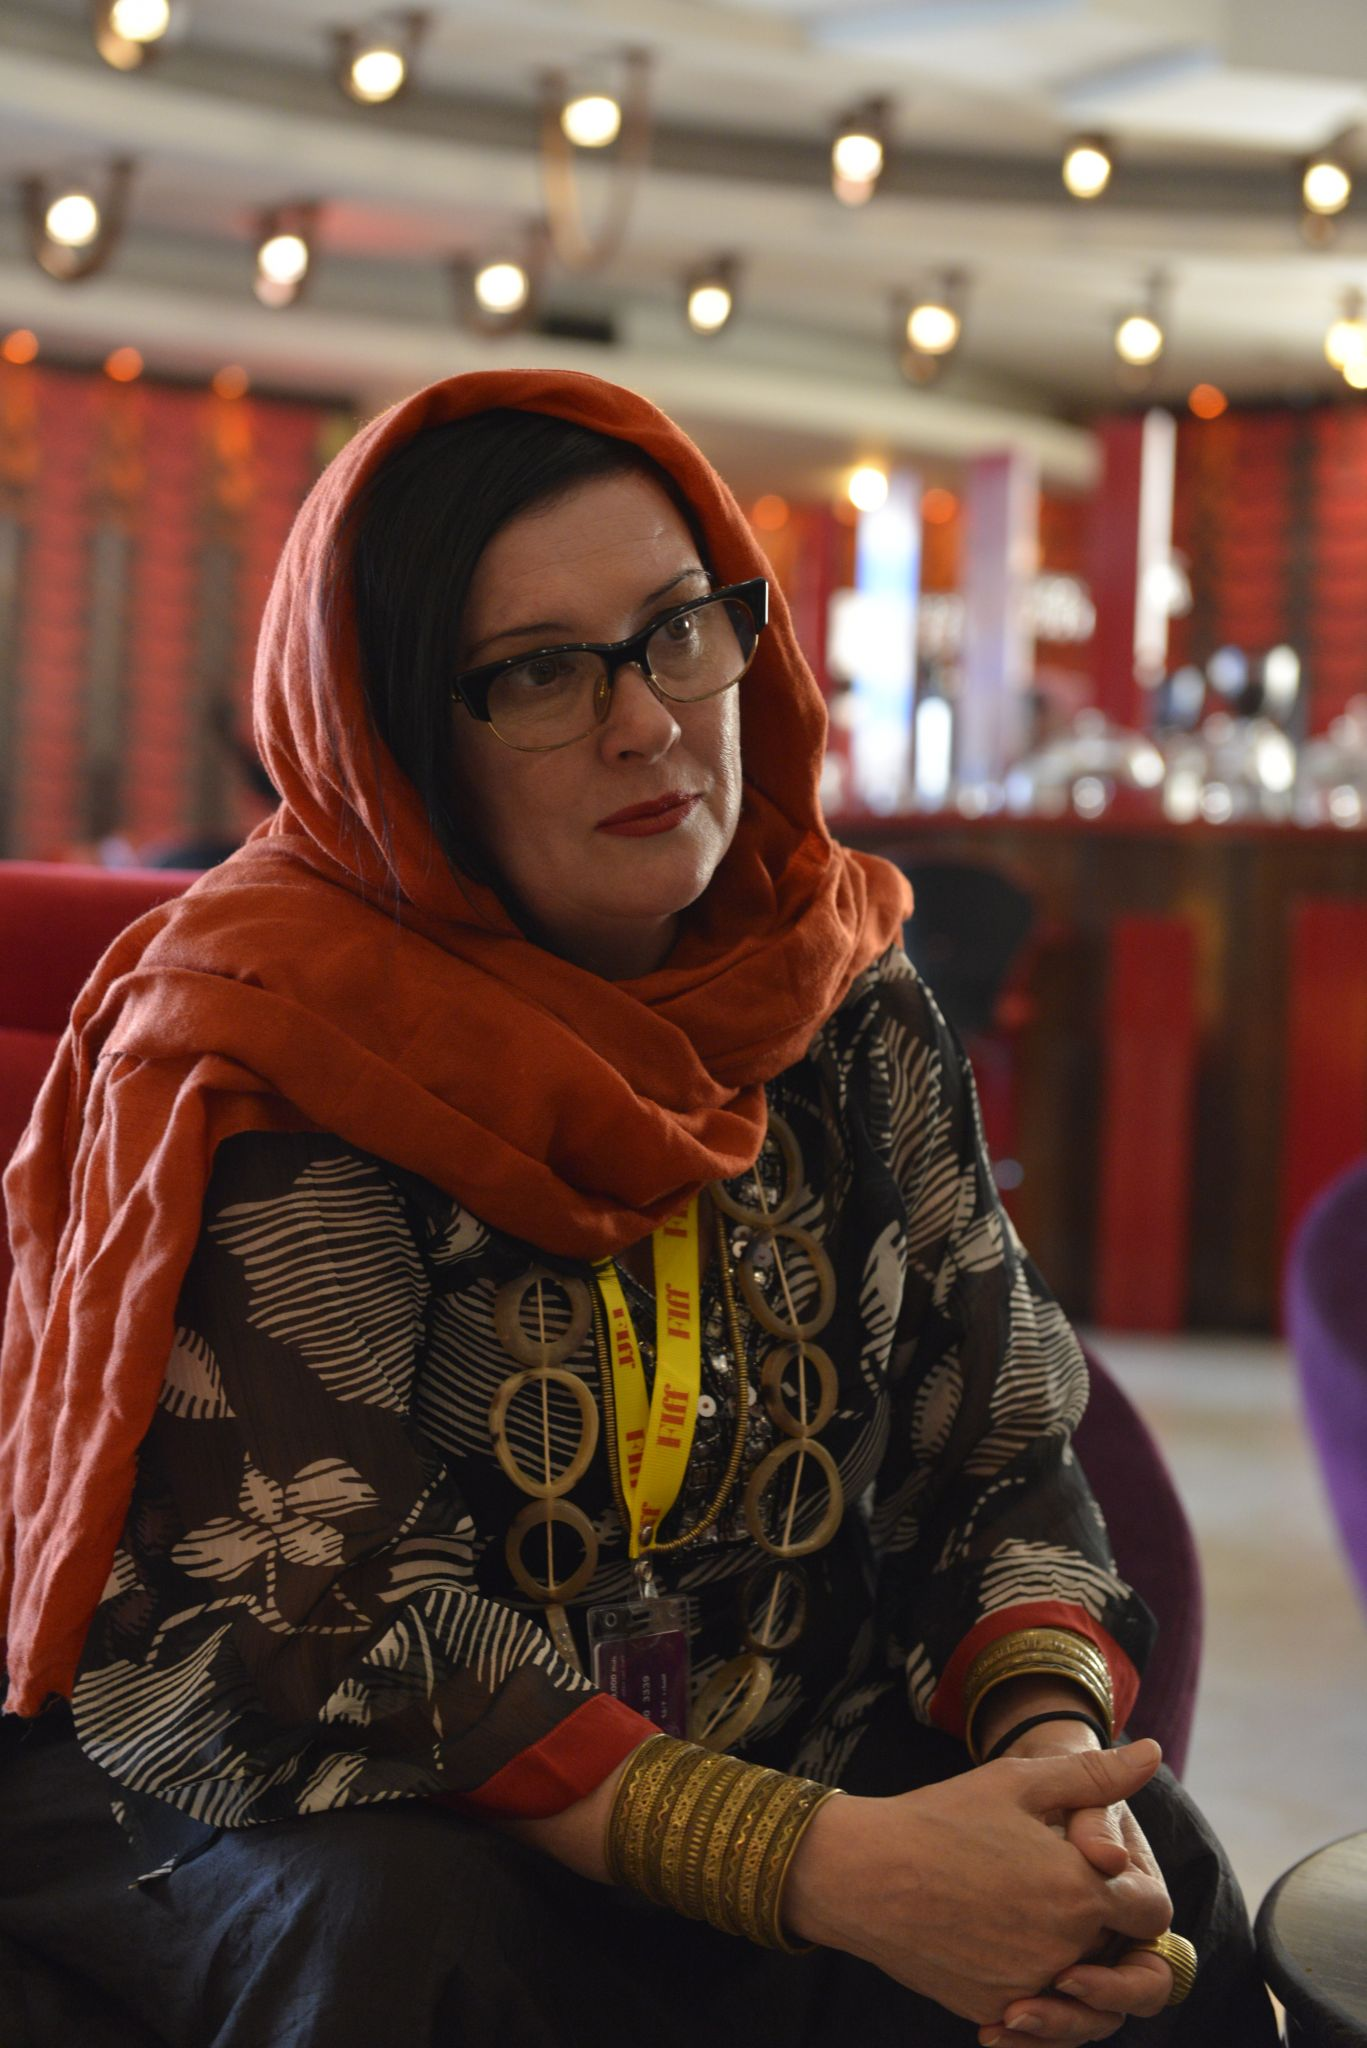 Interview with Maxine Williamson, Artistic Director of Asia Pacific Screen Awards: Iranian Cinema Demonstrates Humanistic Dramas